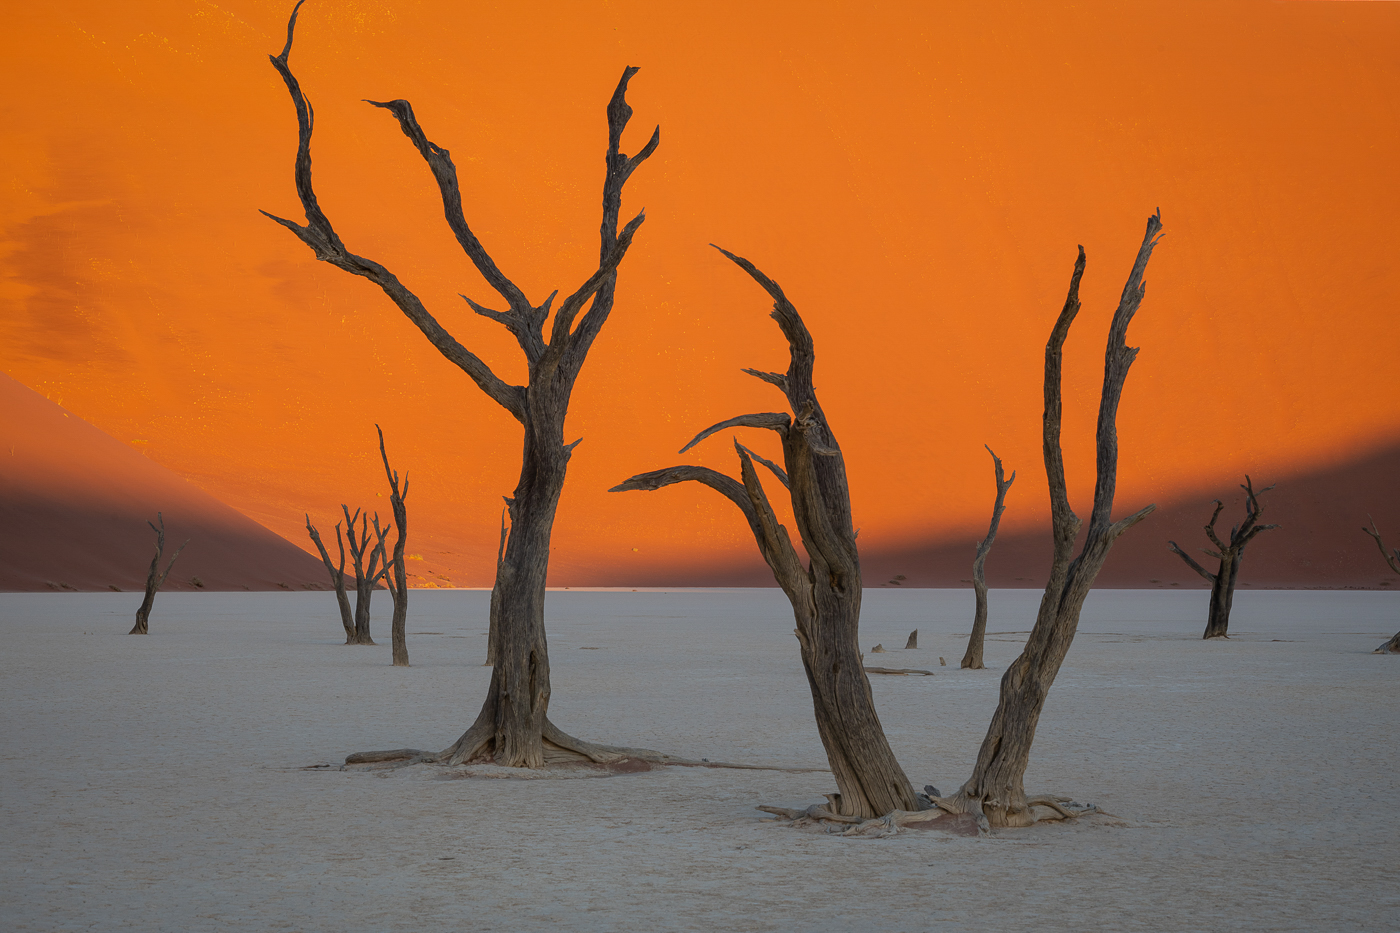 42Open_Lily_Chang_1_Dead_Dancing_trees_in_Sand_Dune